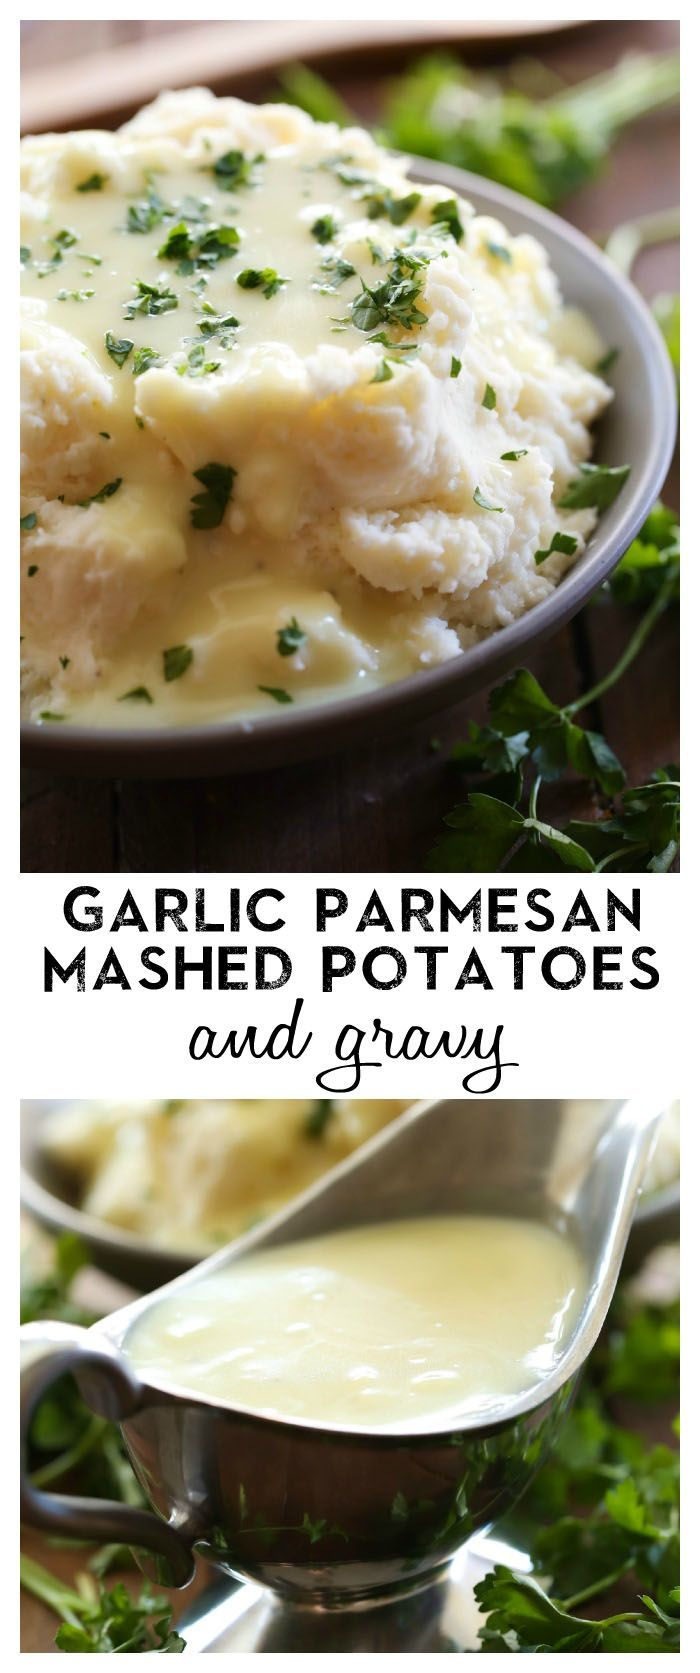 124 best Side Dishes images on Pinterest